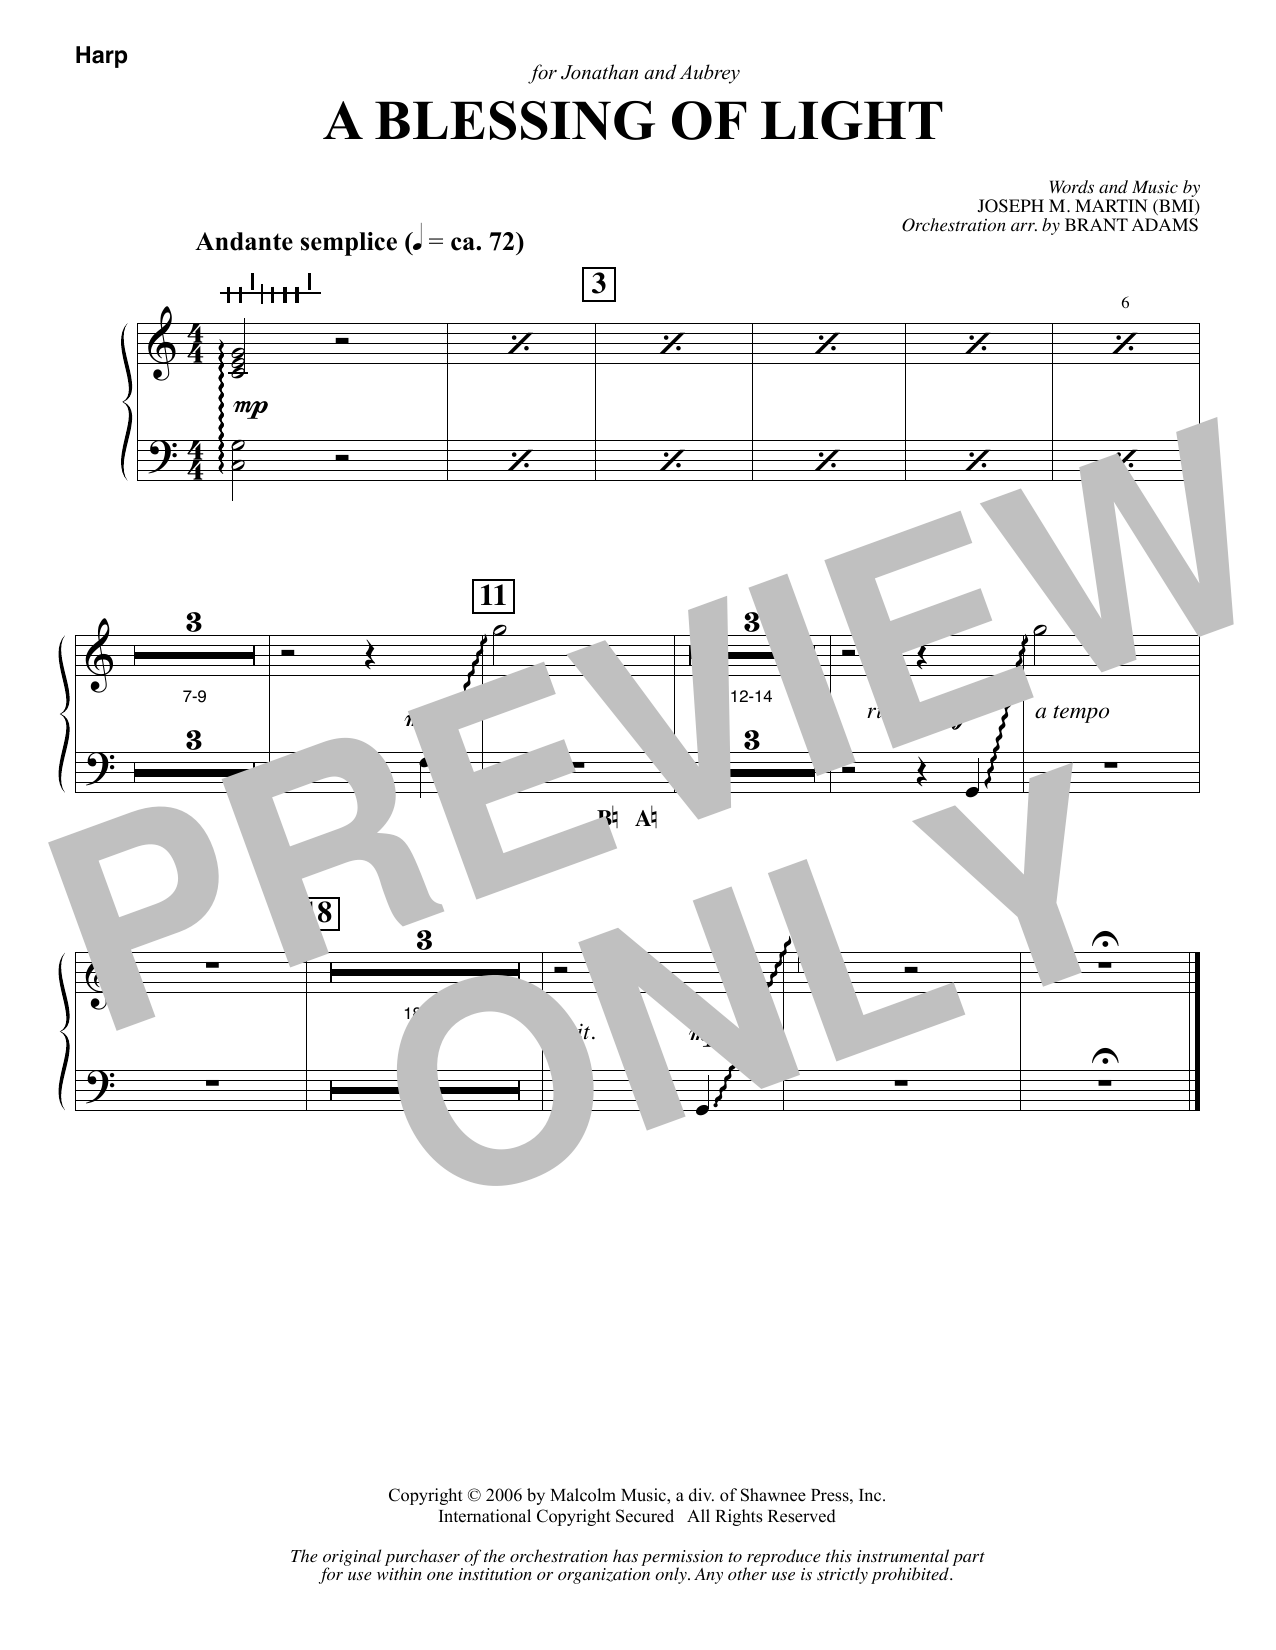 Joseph M. Martin A Blessing of Light - Harp sheet music notes and chords. Download Printable PDF.